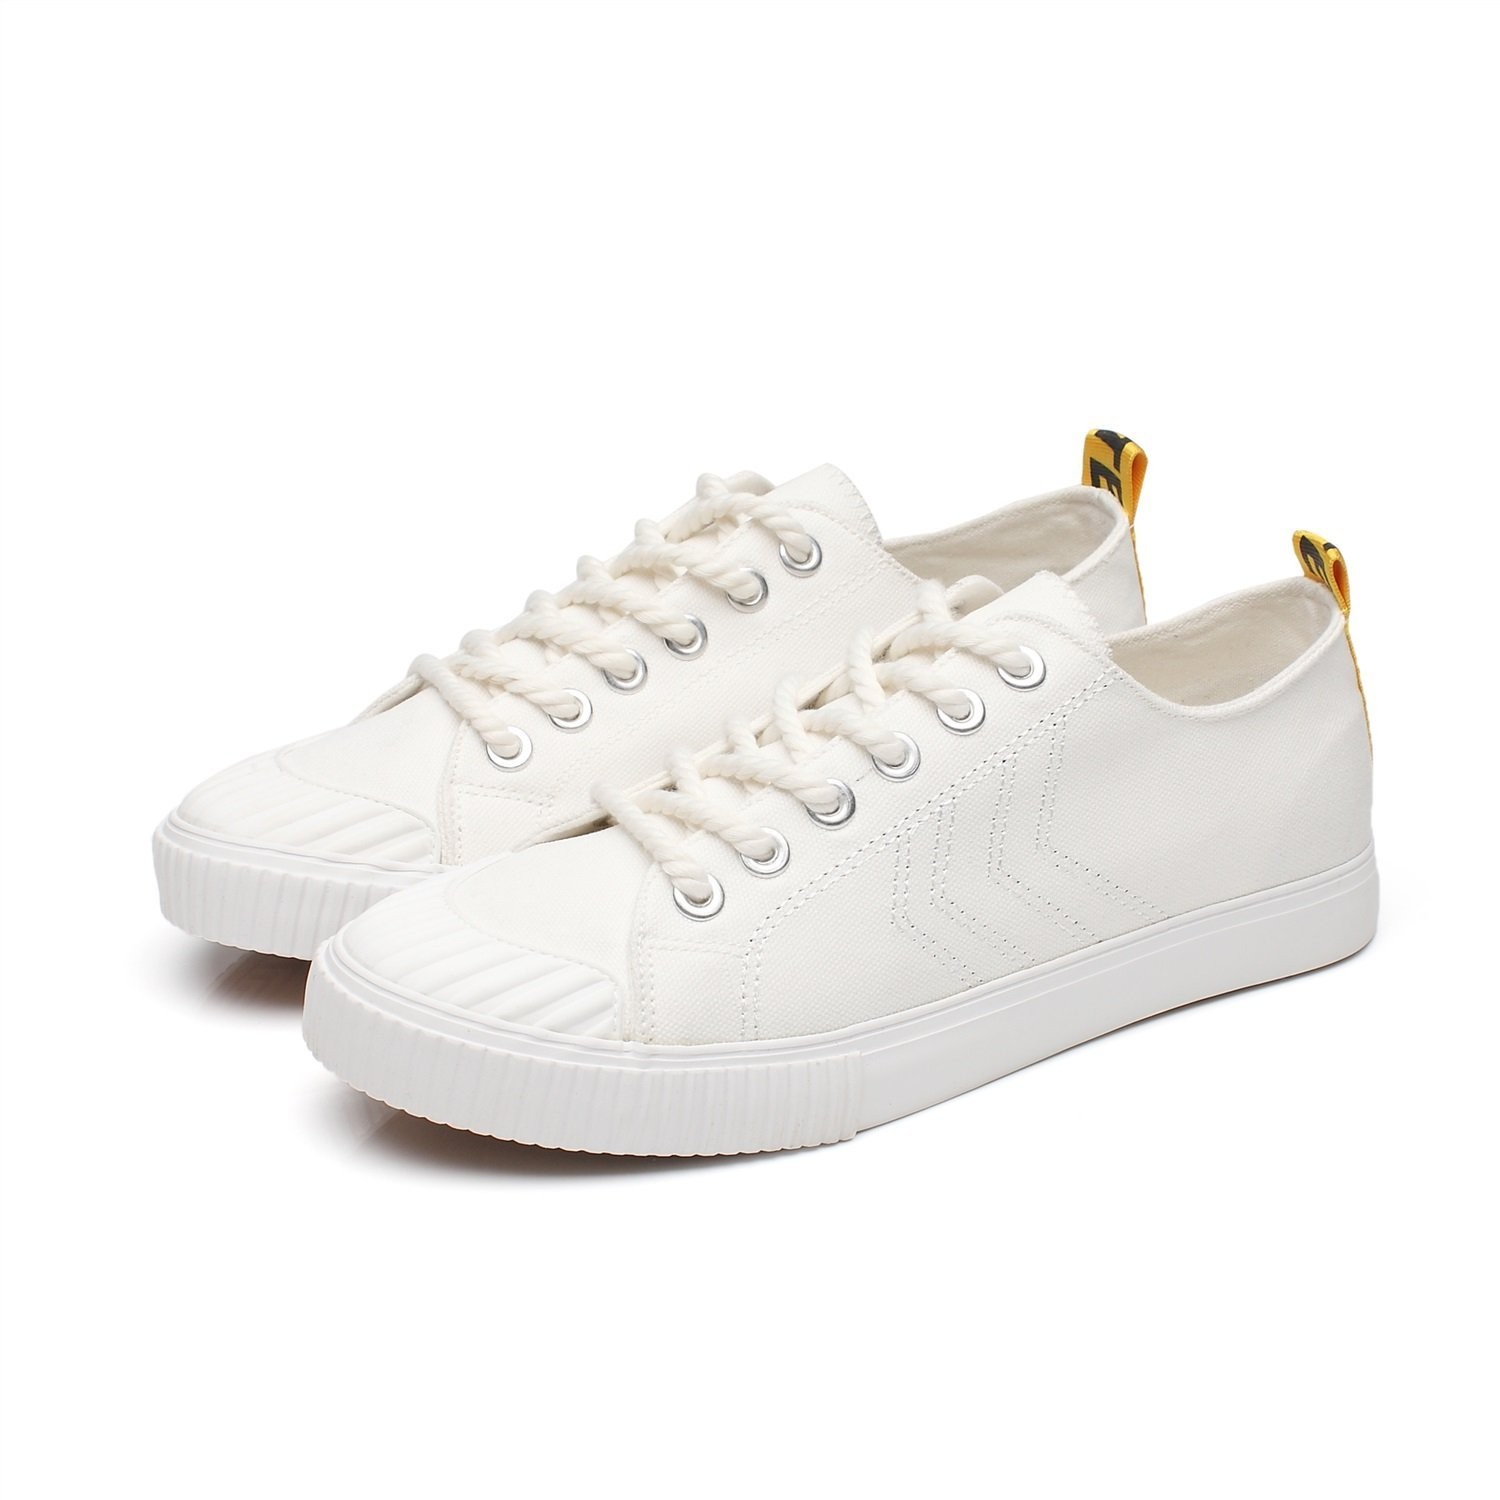 Cheap White Deck Shoes Mens, find White